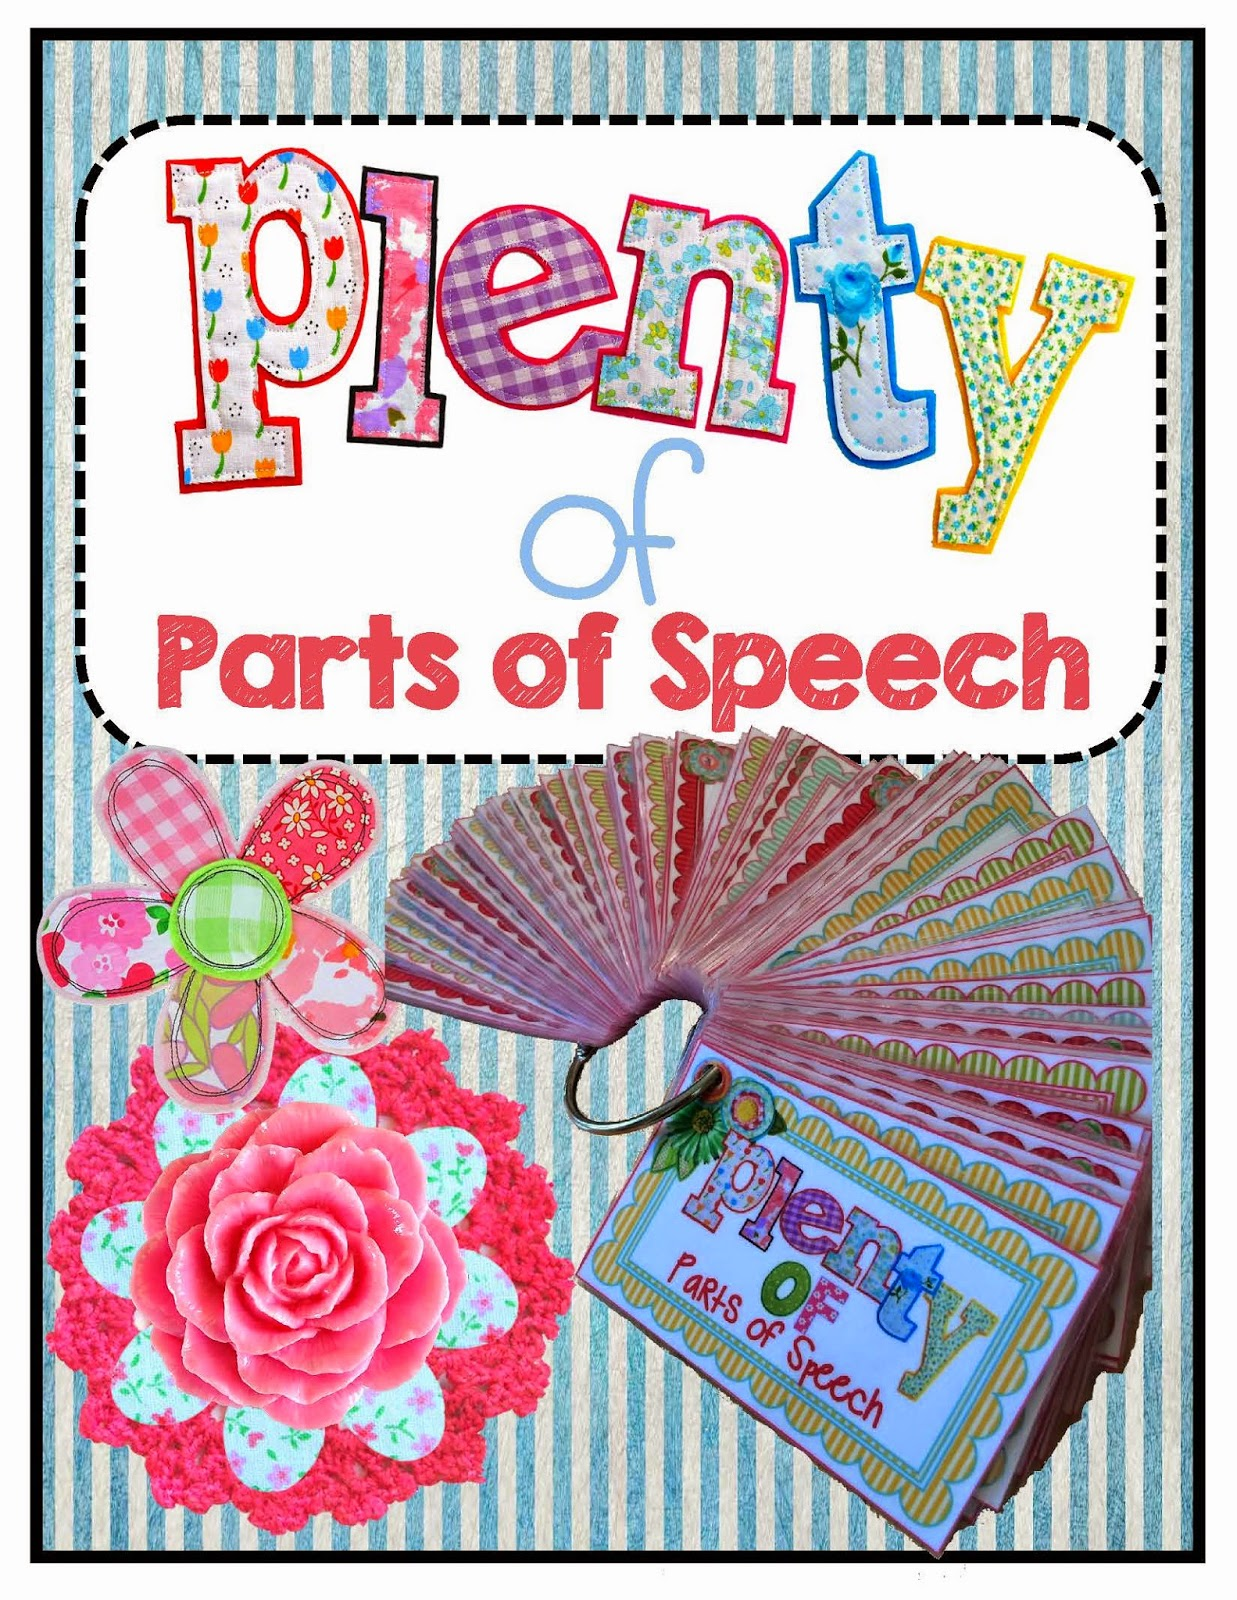 http://www.teacherspayteachers.com/Product/Plenty-of-Parts-of-Speech-1307329